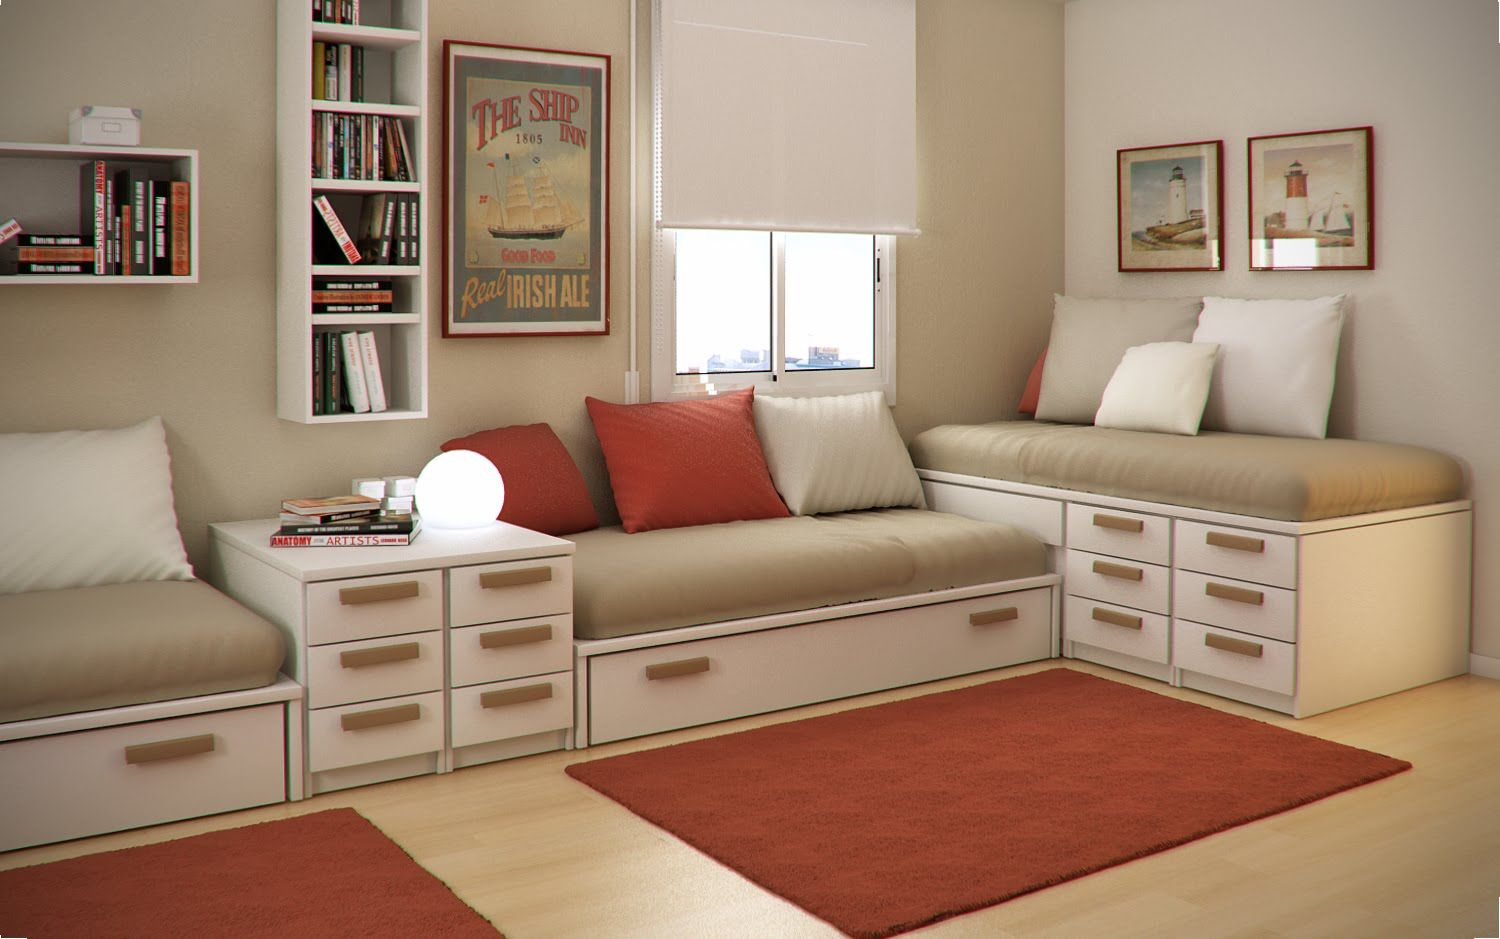 30 Space Saving Beds For Small Rooms | Relaxation room, Kids rooms ...